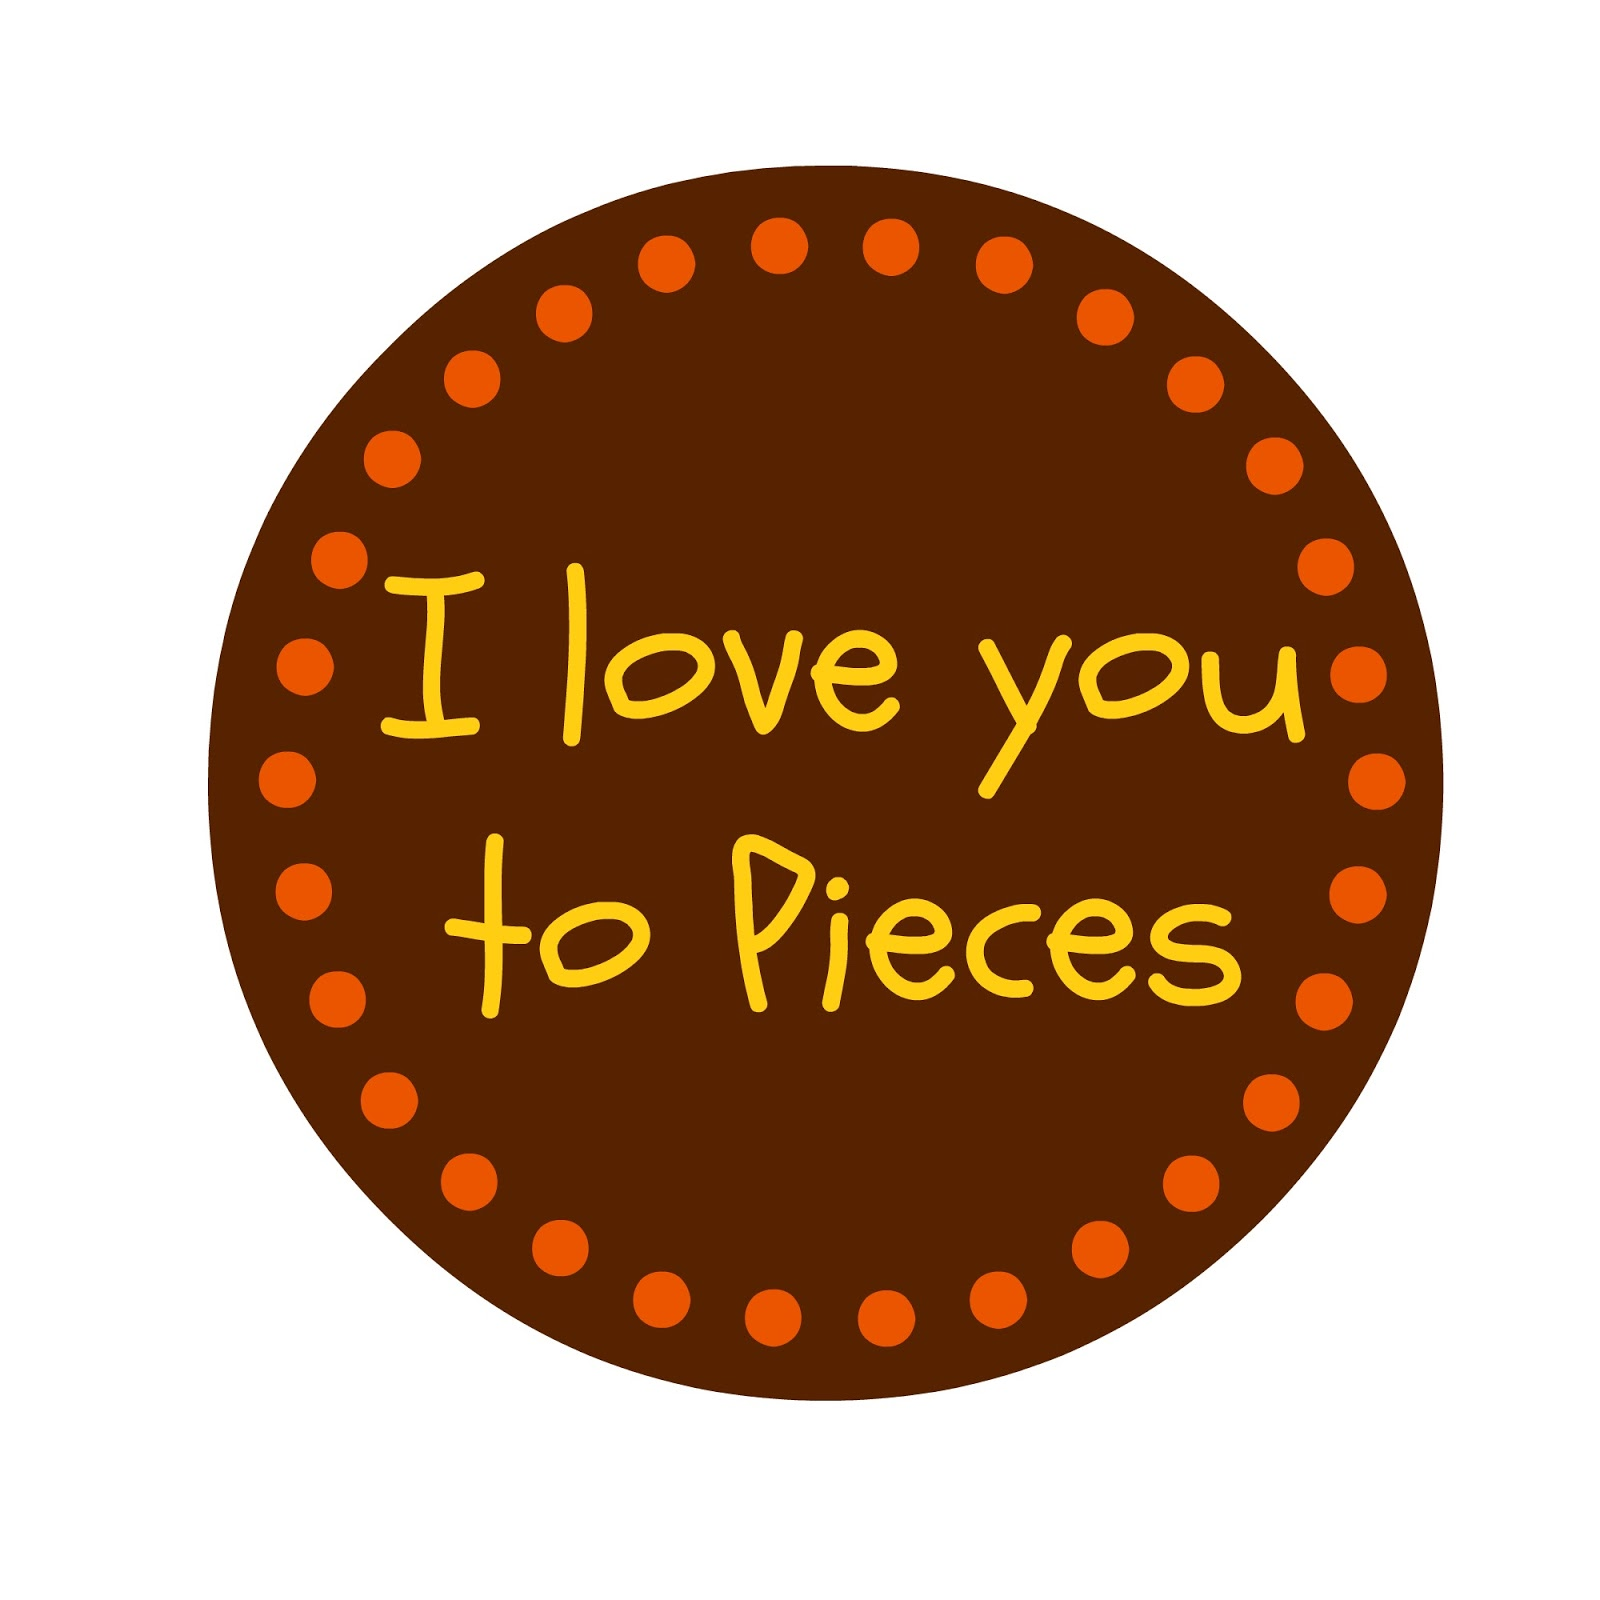 7 Best Images of I Love You To Pieces Printable - Love You ...